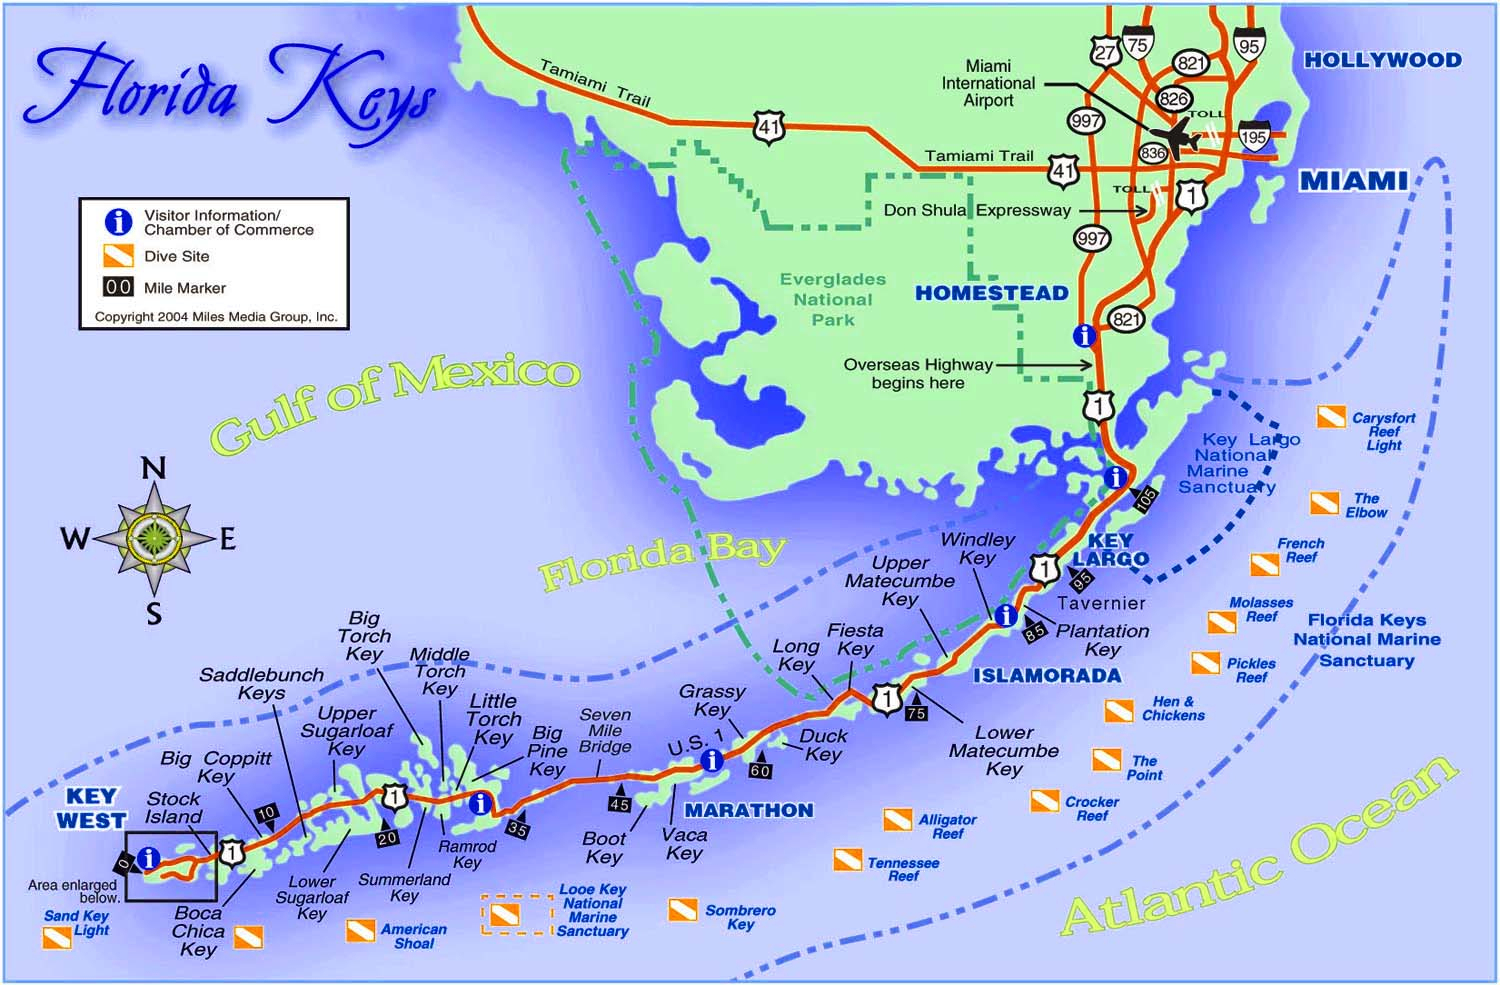 Best Florida Keys Beaches Map And Information - Florida Keys - Florida Keys Map Of Beaches